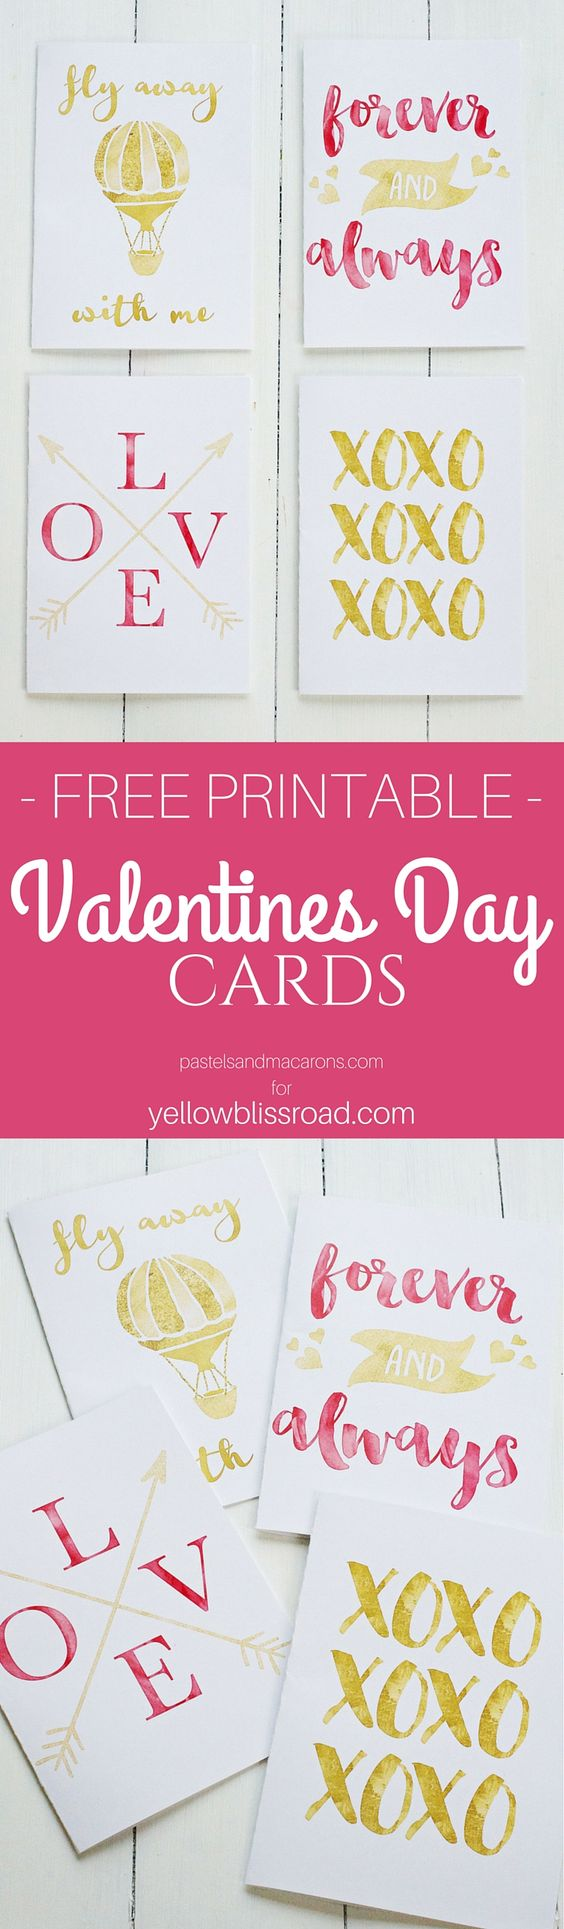 Free Printable Valentines Day Cards and Gift Tags landeelu – Valentine Card Free Printable